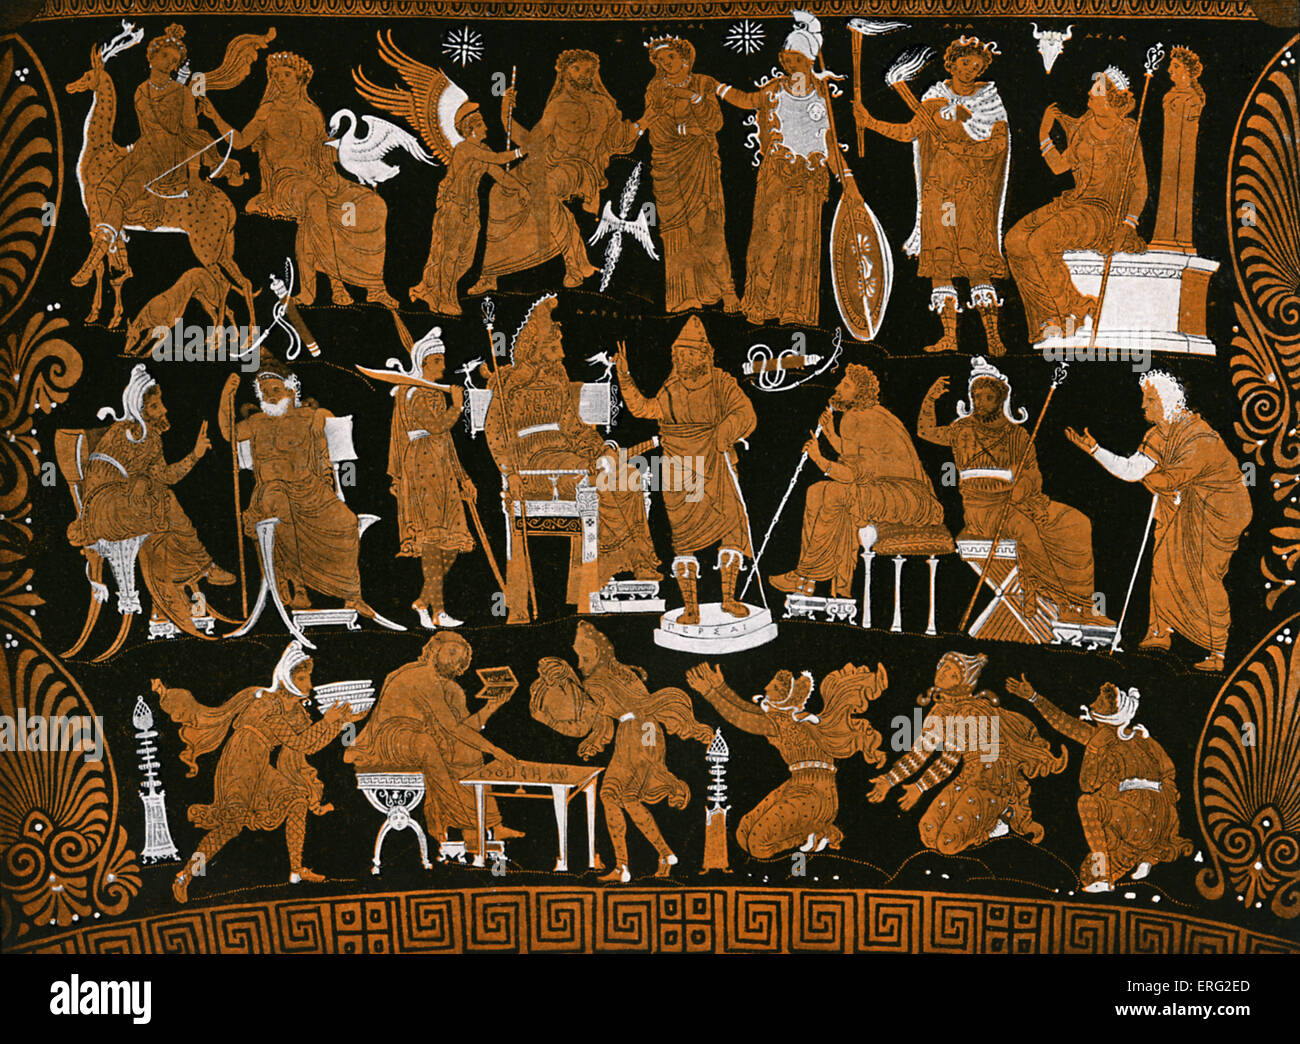 The war council of Darius, presented on a Greek red figure vase.  Darius King of Persia 549 BCE - 486 BCE. - Stock Image